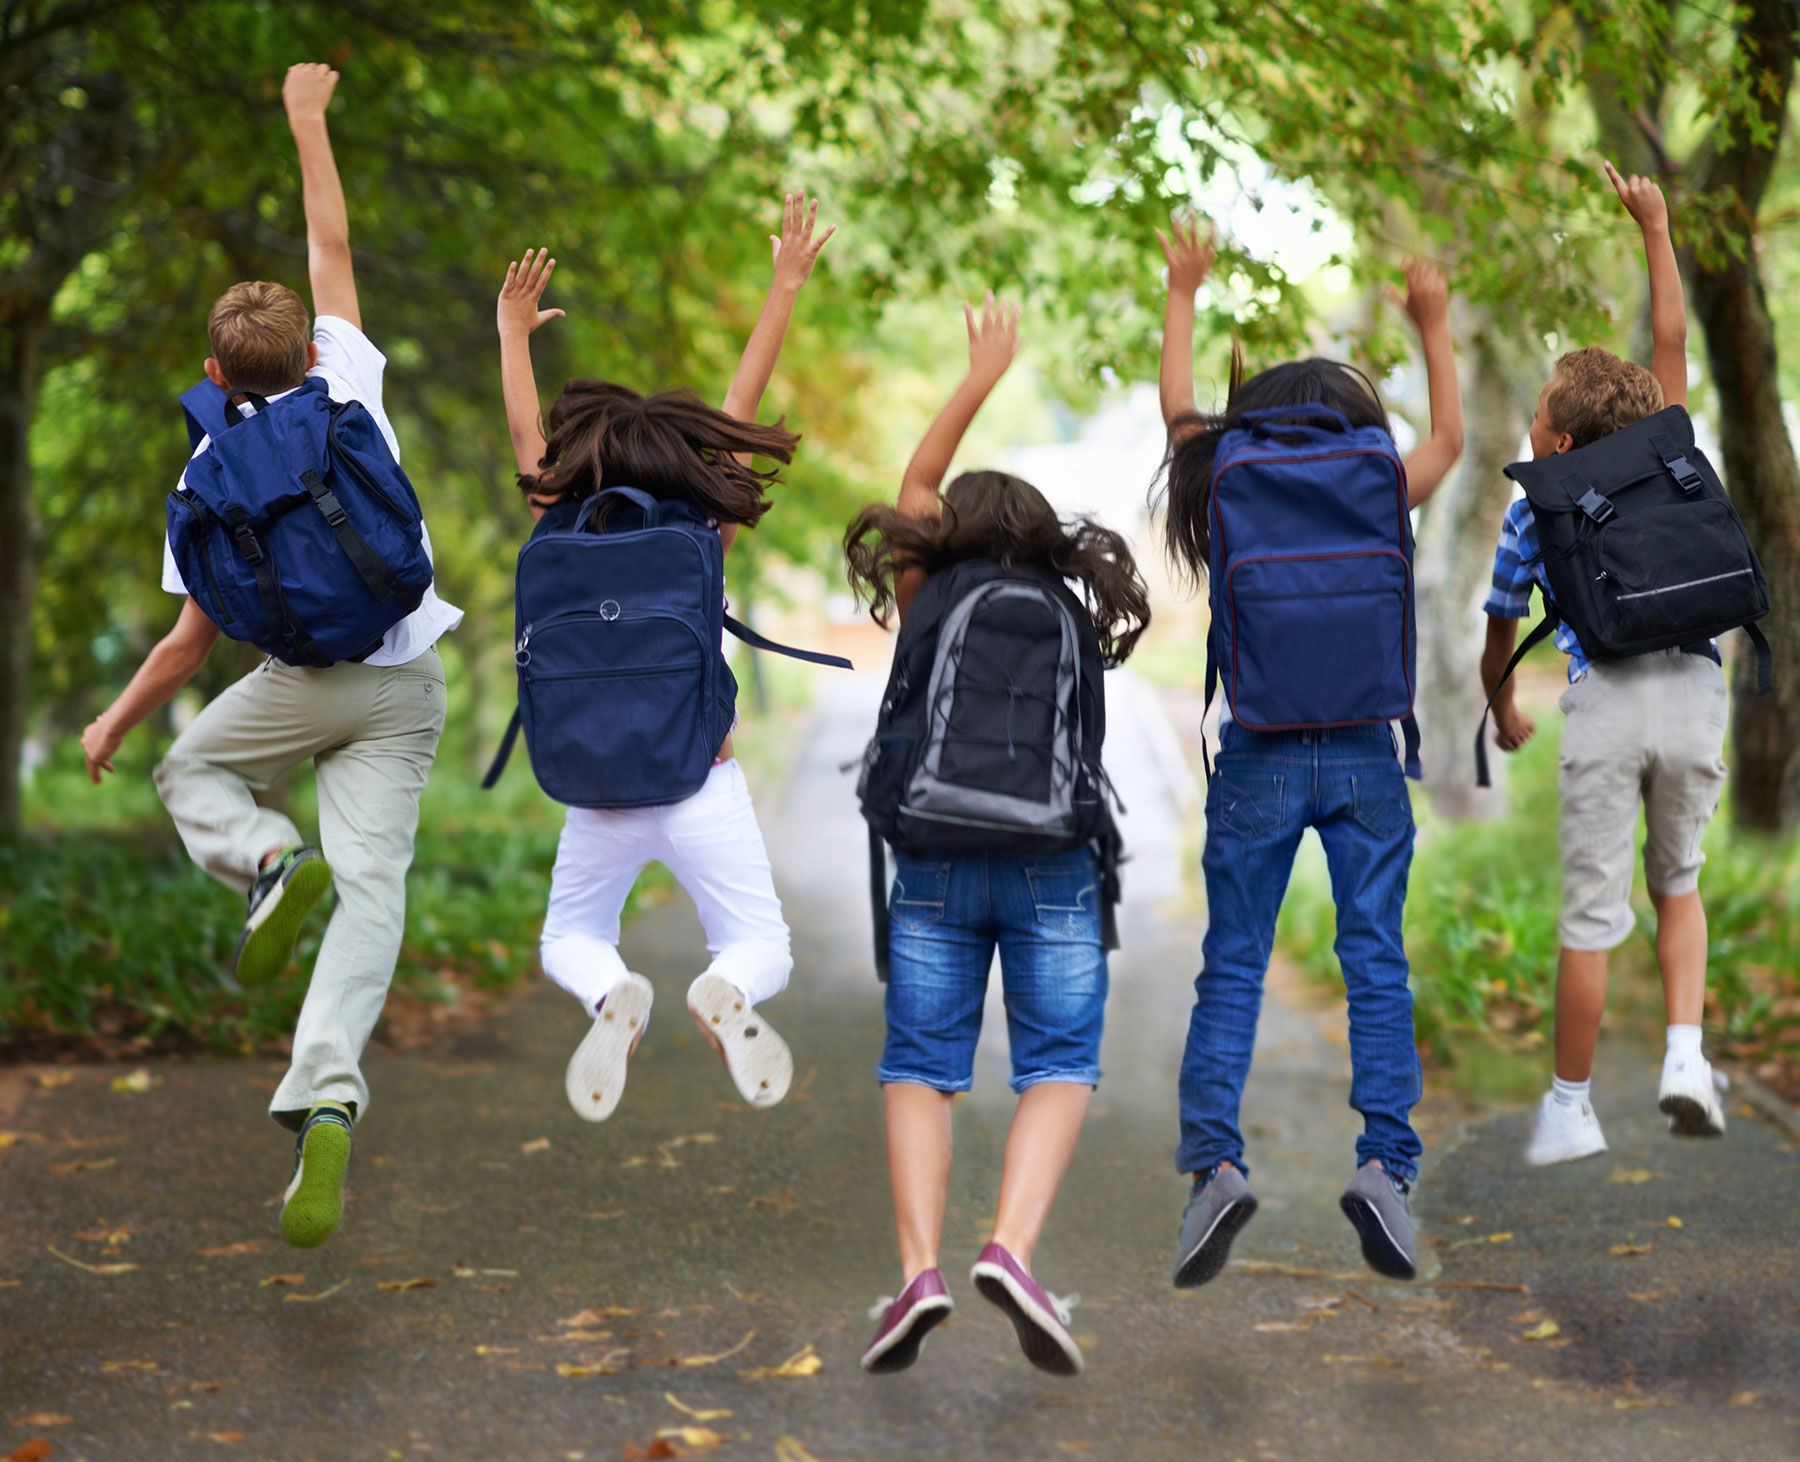 School Kids Wearing Backpacks Jumping in Air